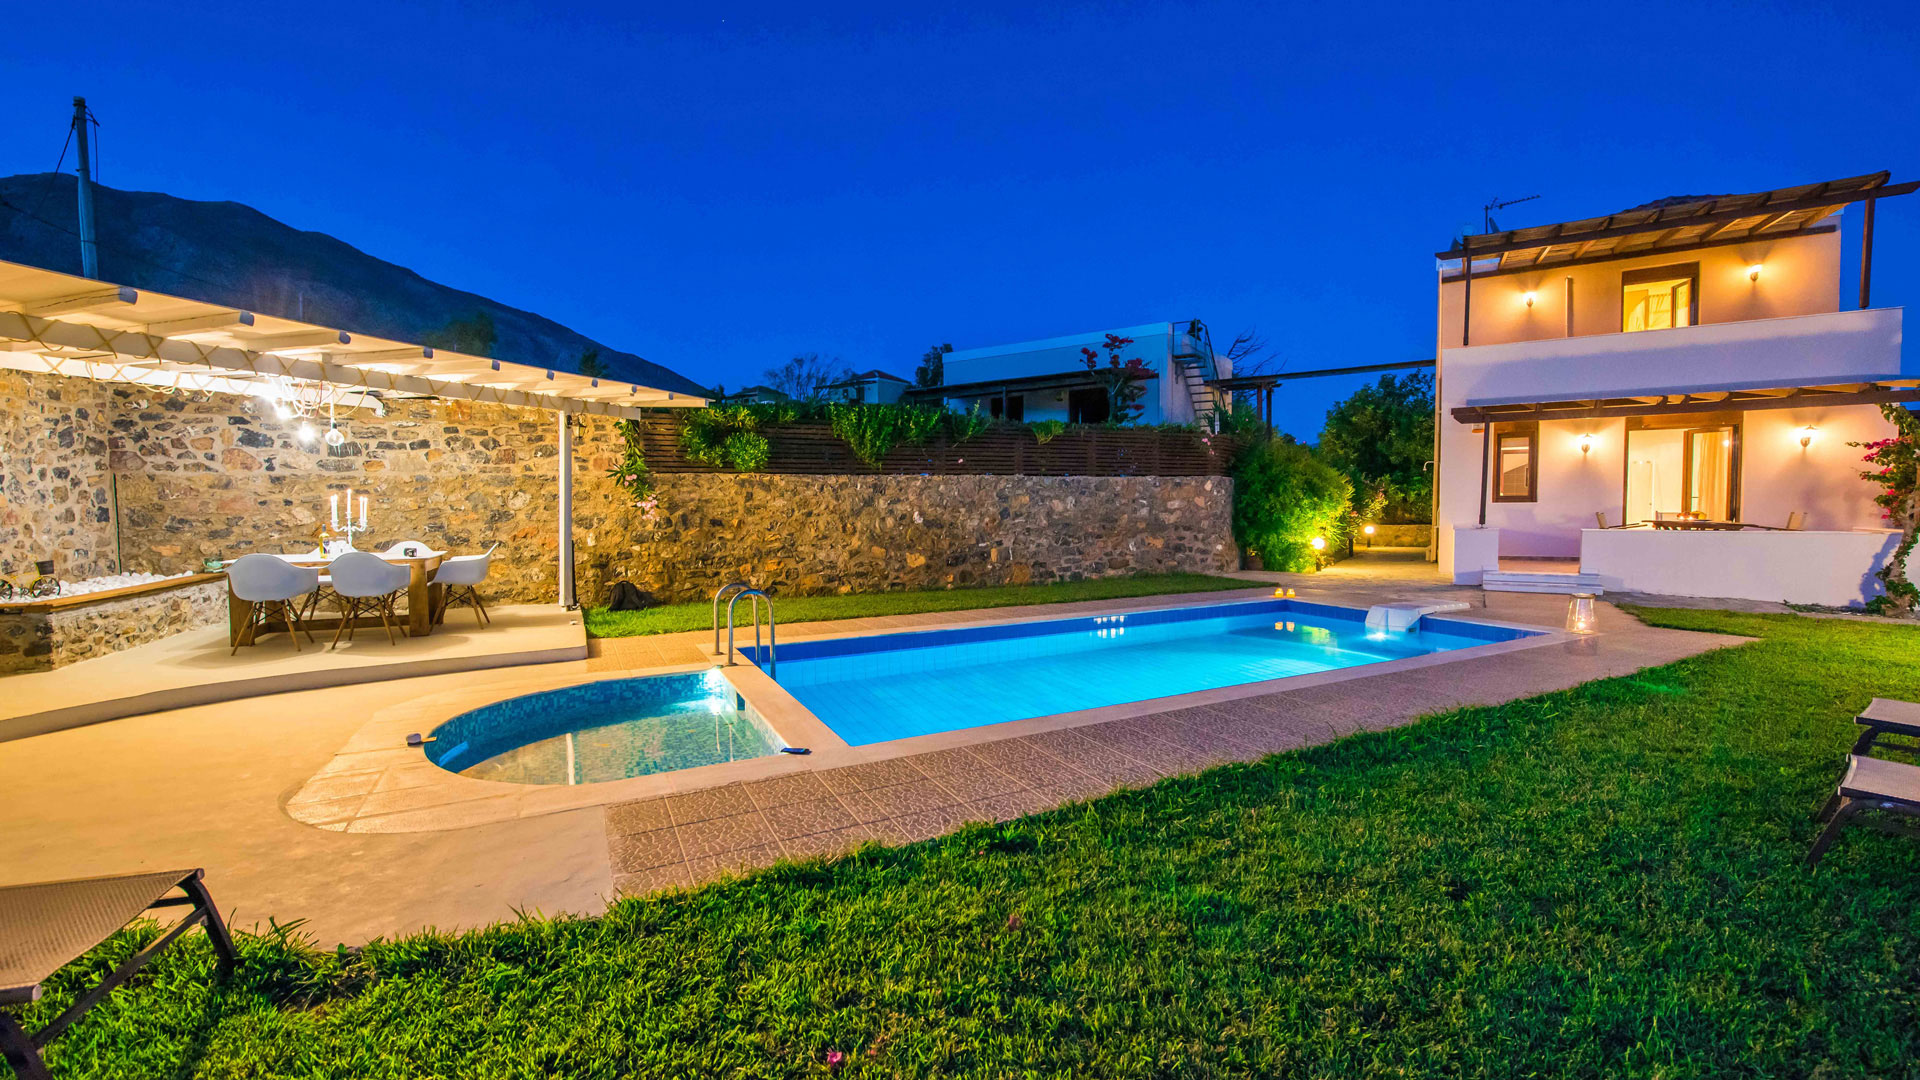 Gasparakis Villas & Bungalows with private pools - Lefkogia Plakias